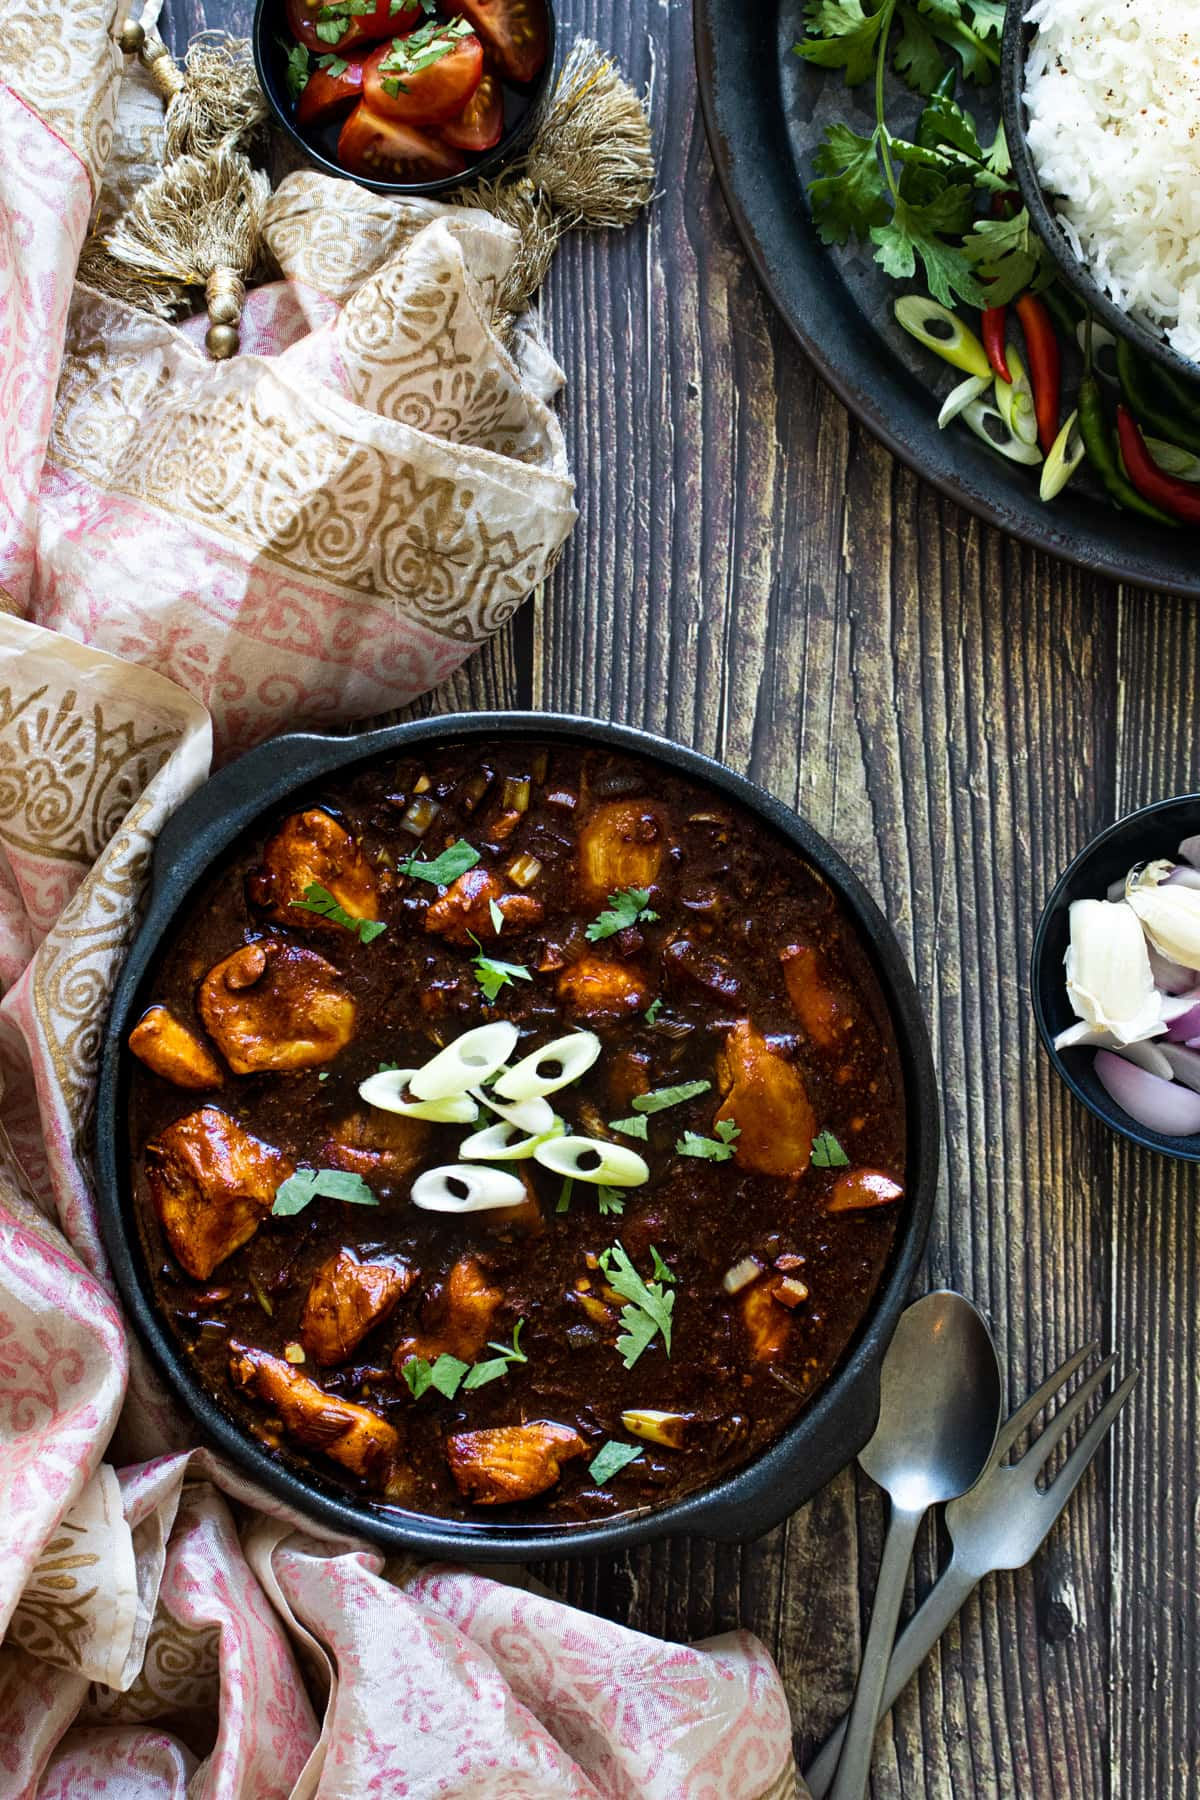 Chicken Manchurian on a table with patterned fabric